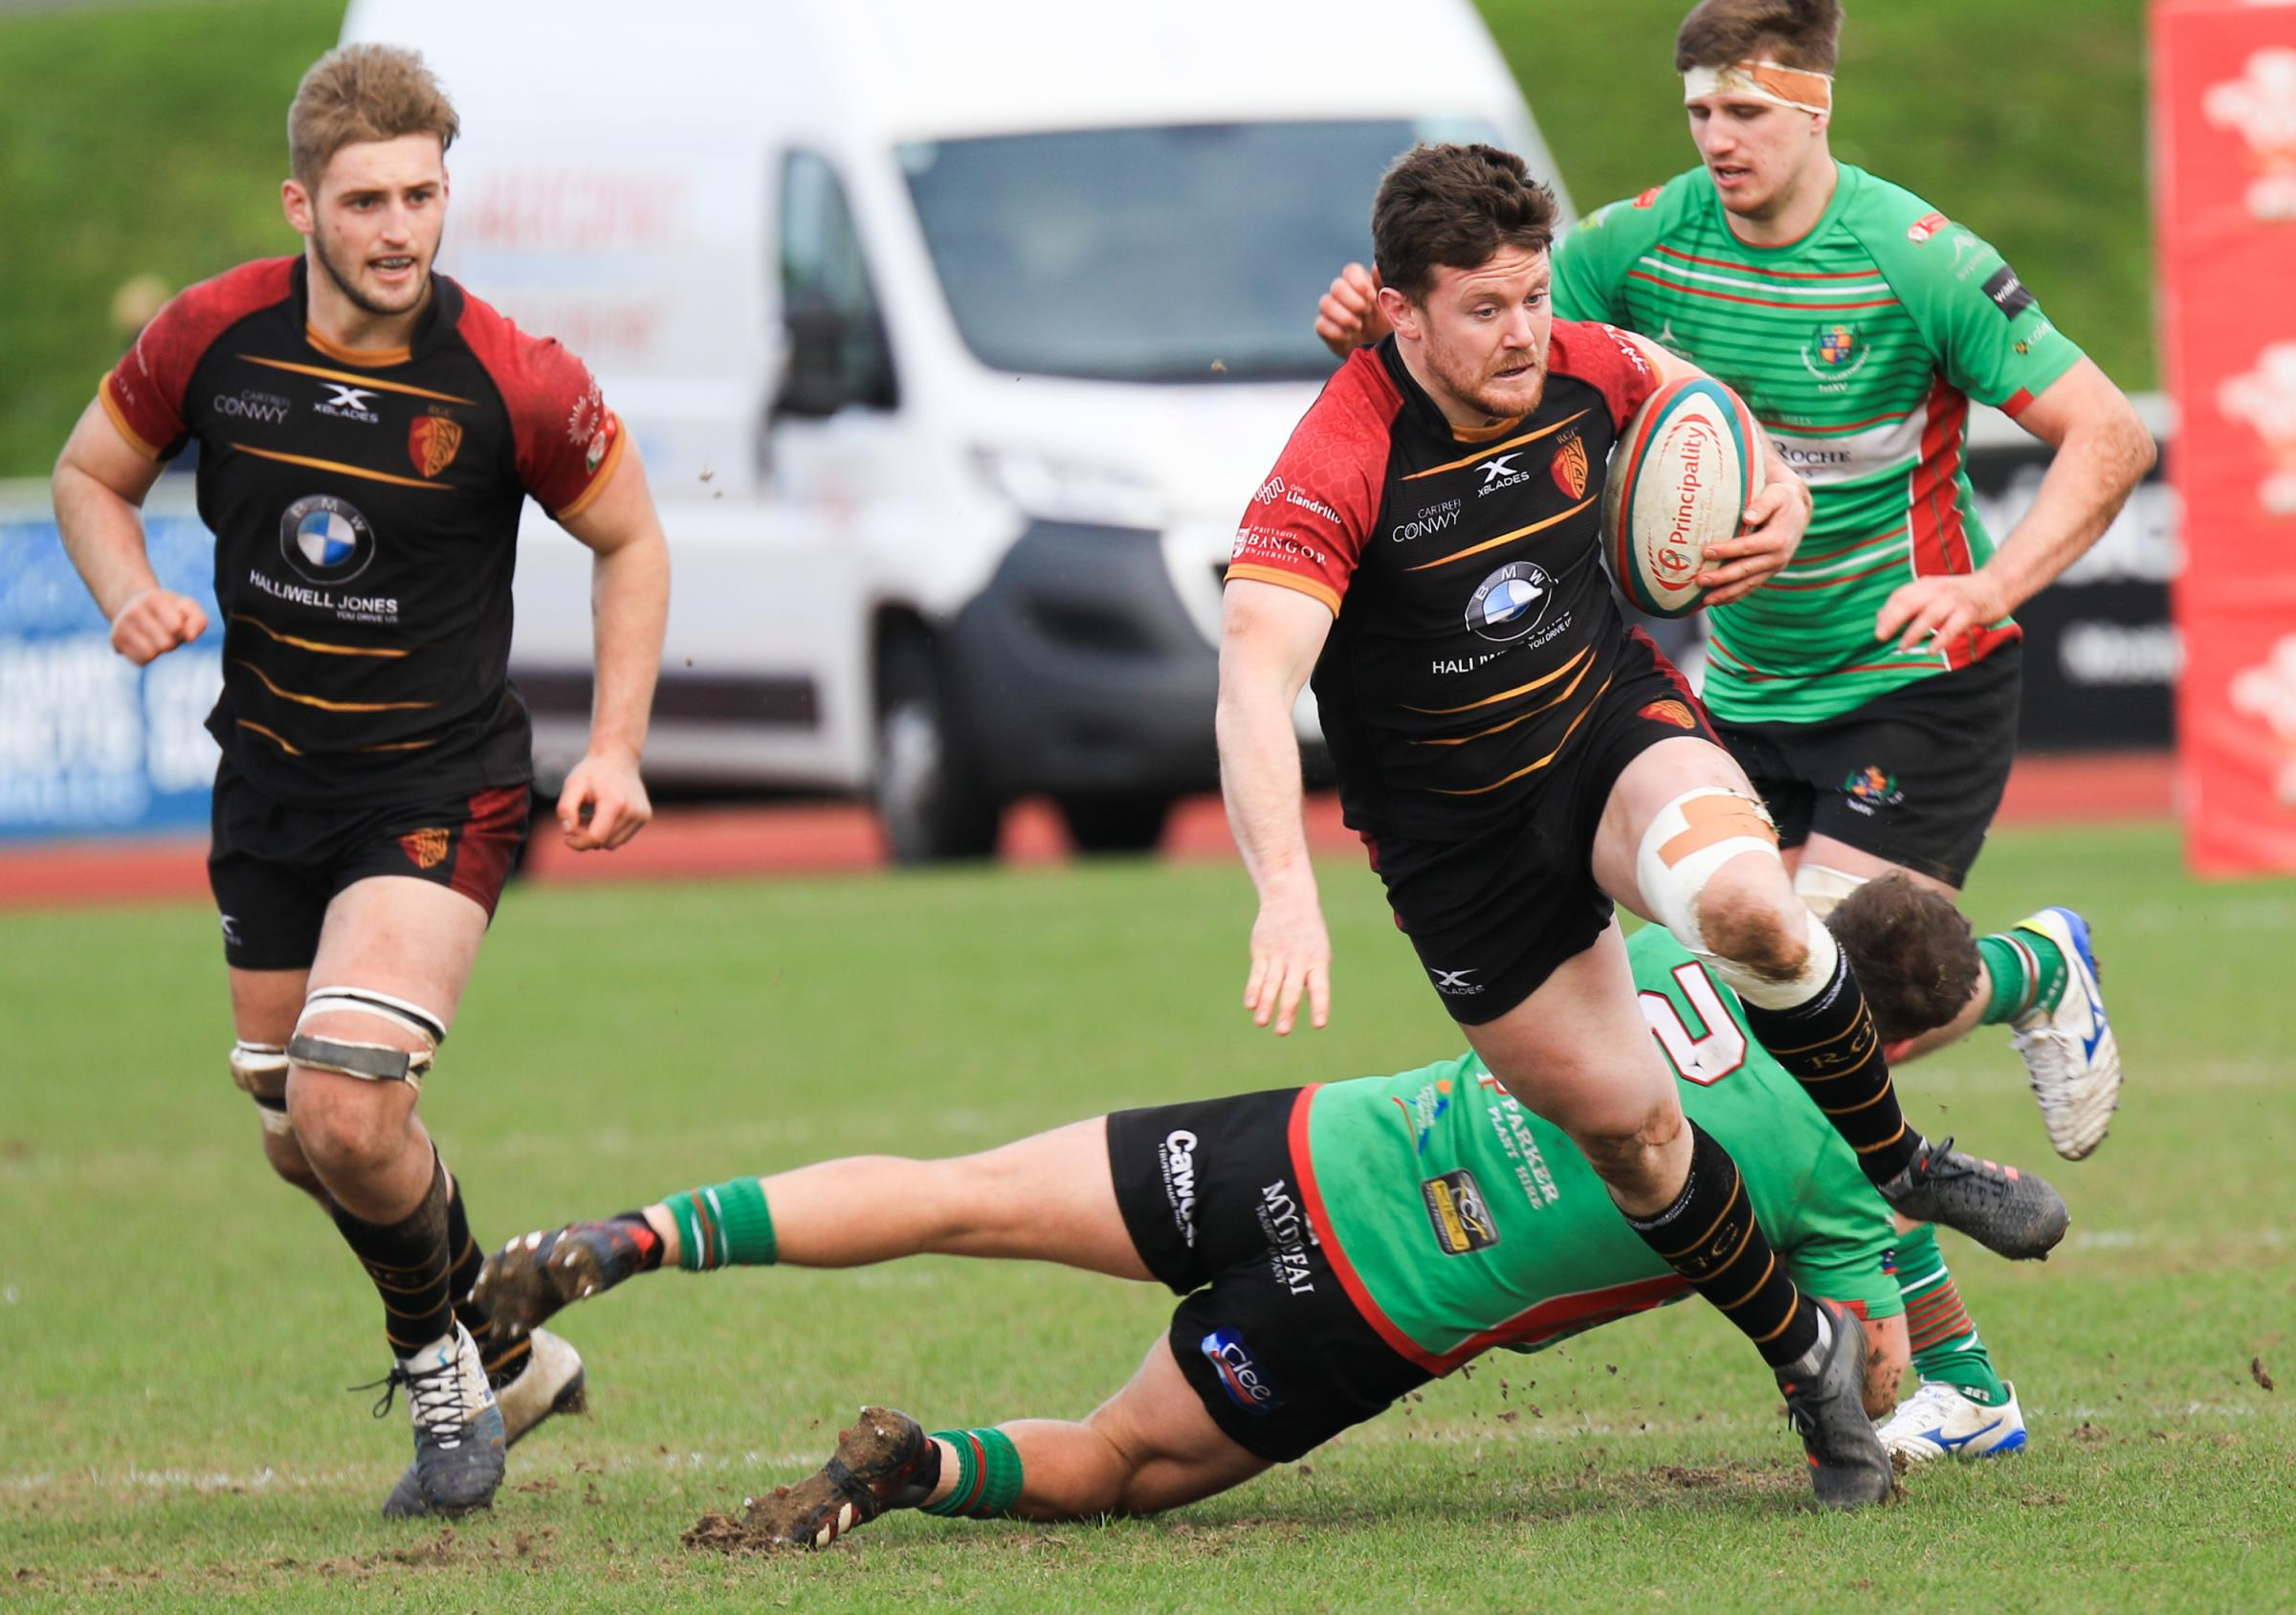 North Wales rugby is set to get a huge boost (photo by Tony Bale)